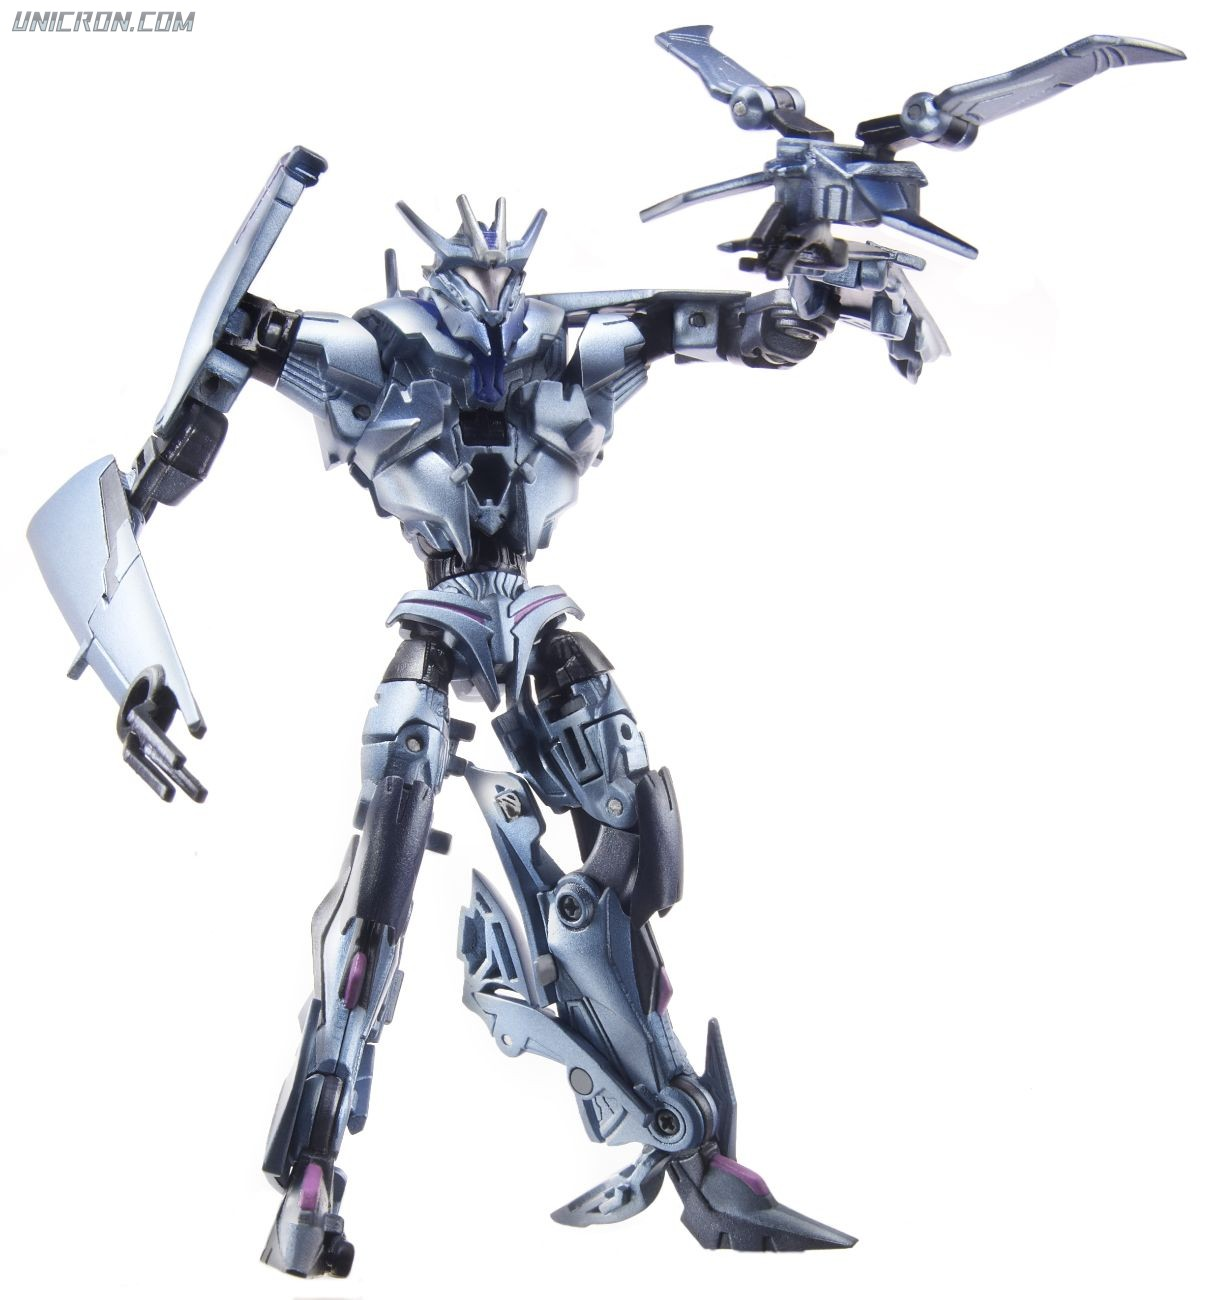 Transformers Prime Soundwave toy